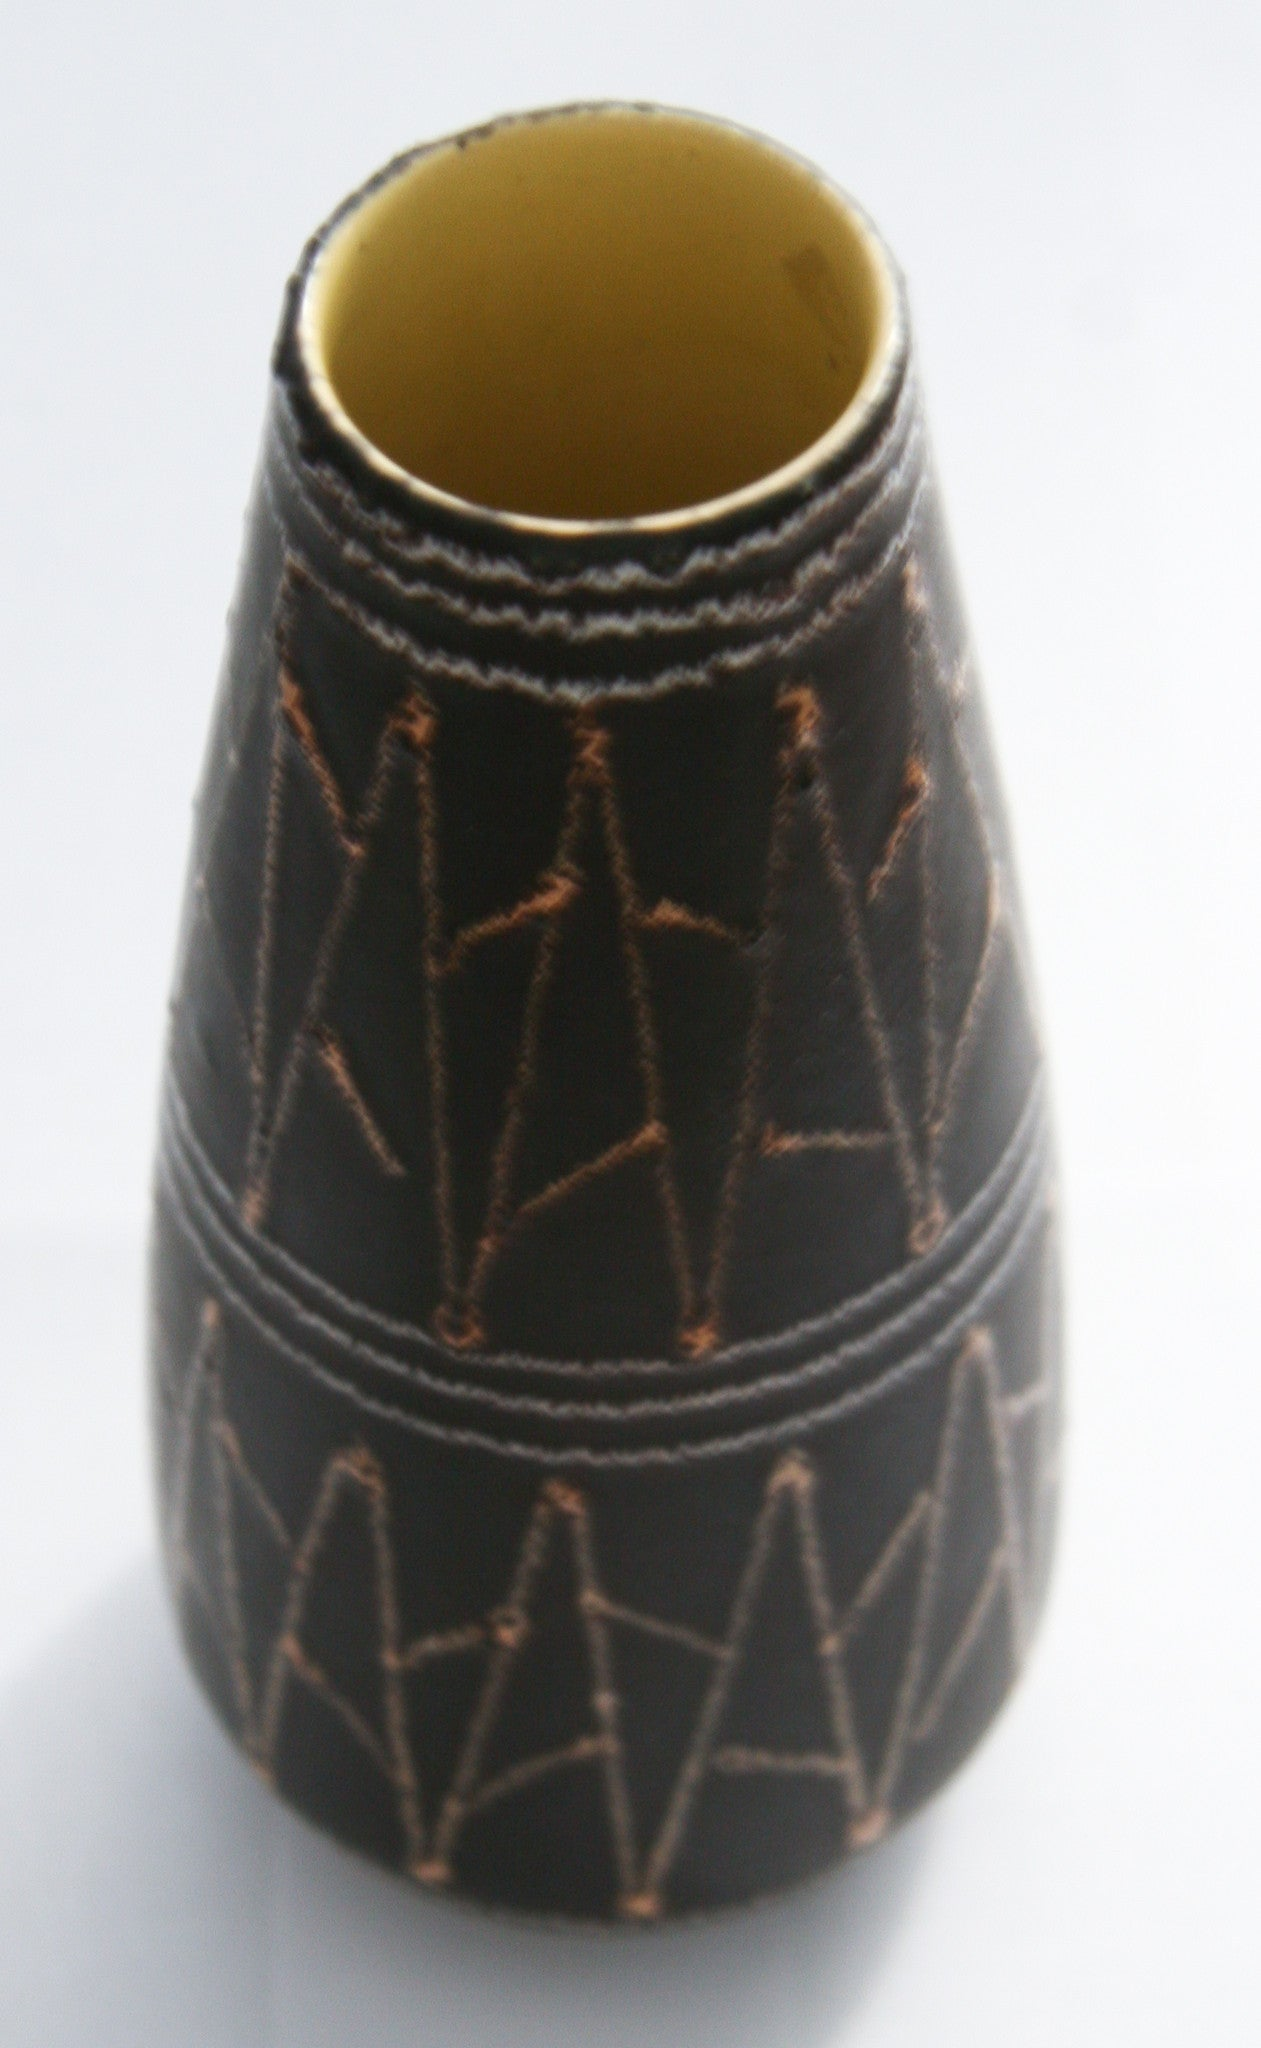 Vintage West German Pottery Vase - Small Brown - Scheurich